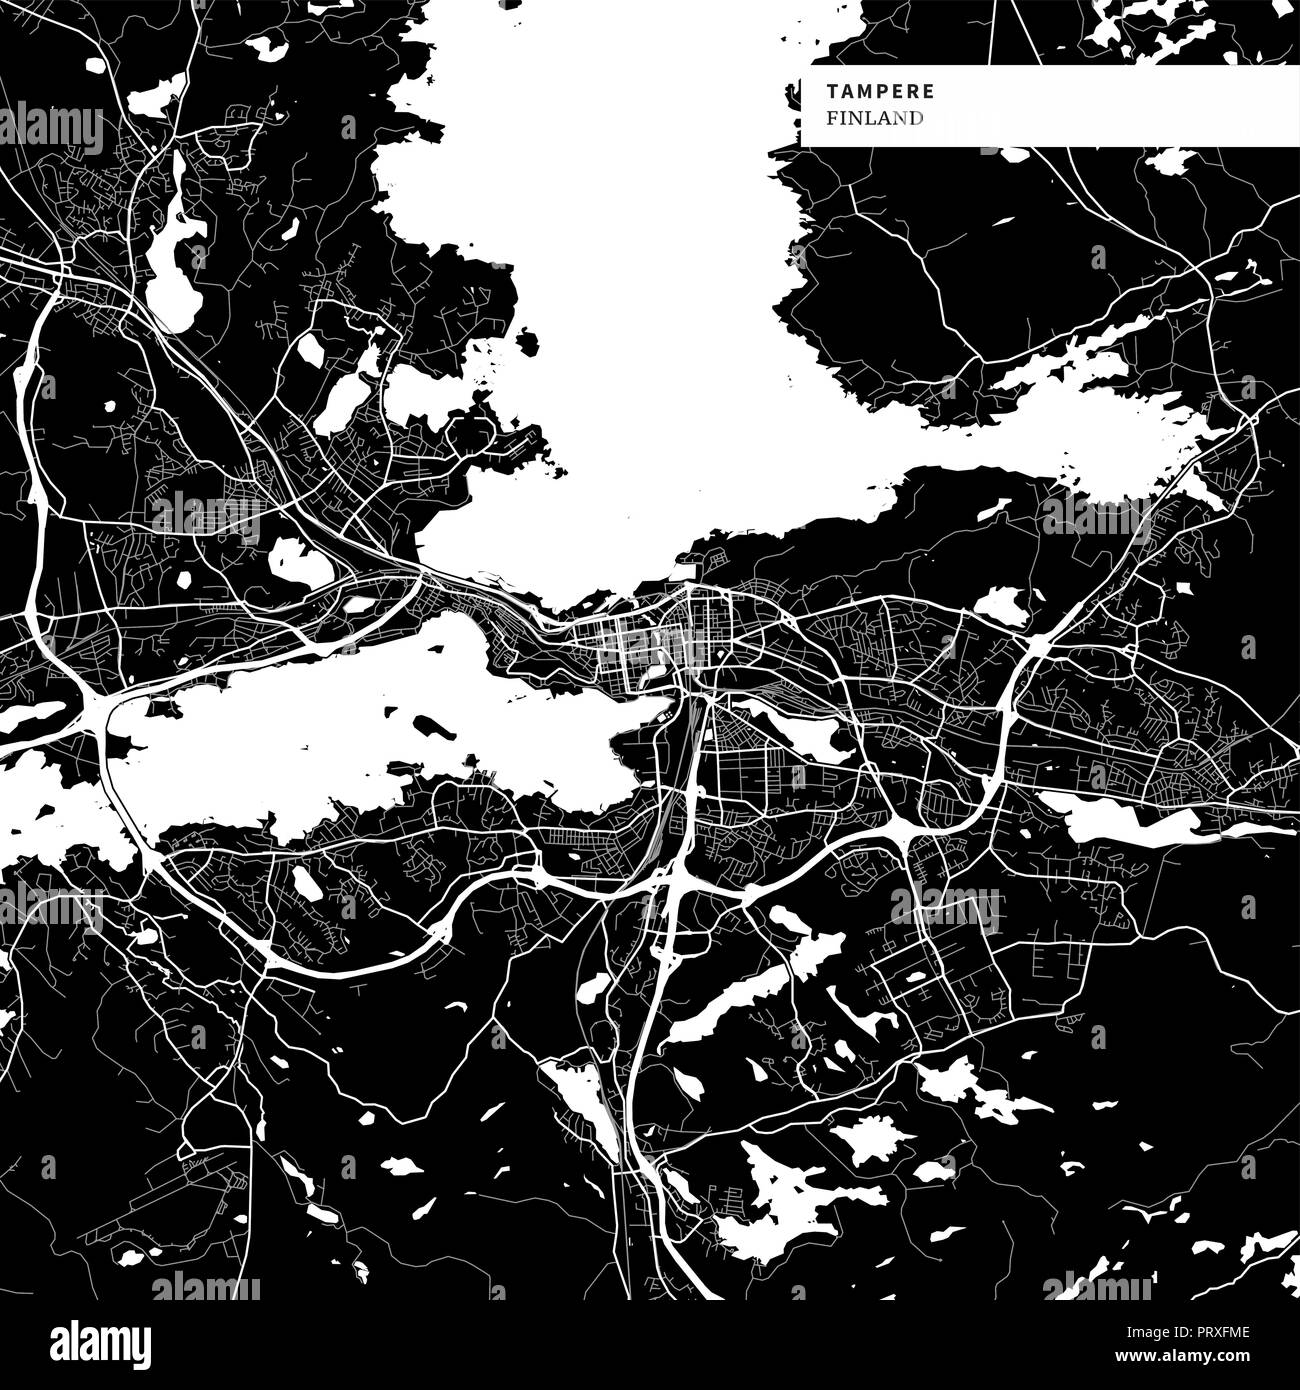 Area map of Tampere, Finland with typical urban landmarks like buildings, roads, waterways and railways as well as smaller streets and park trails. Re - Stock Vector